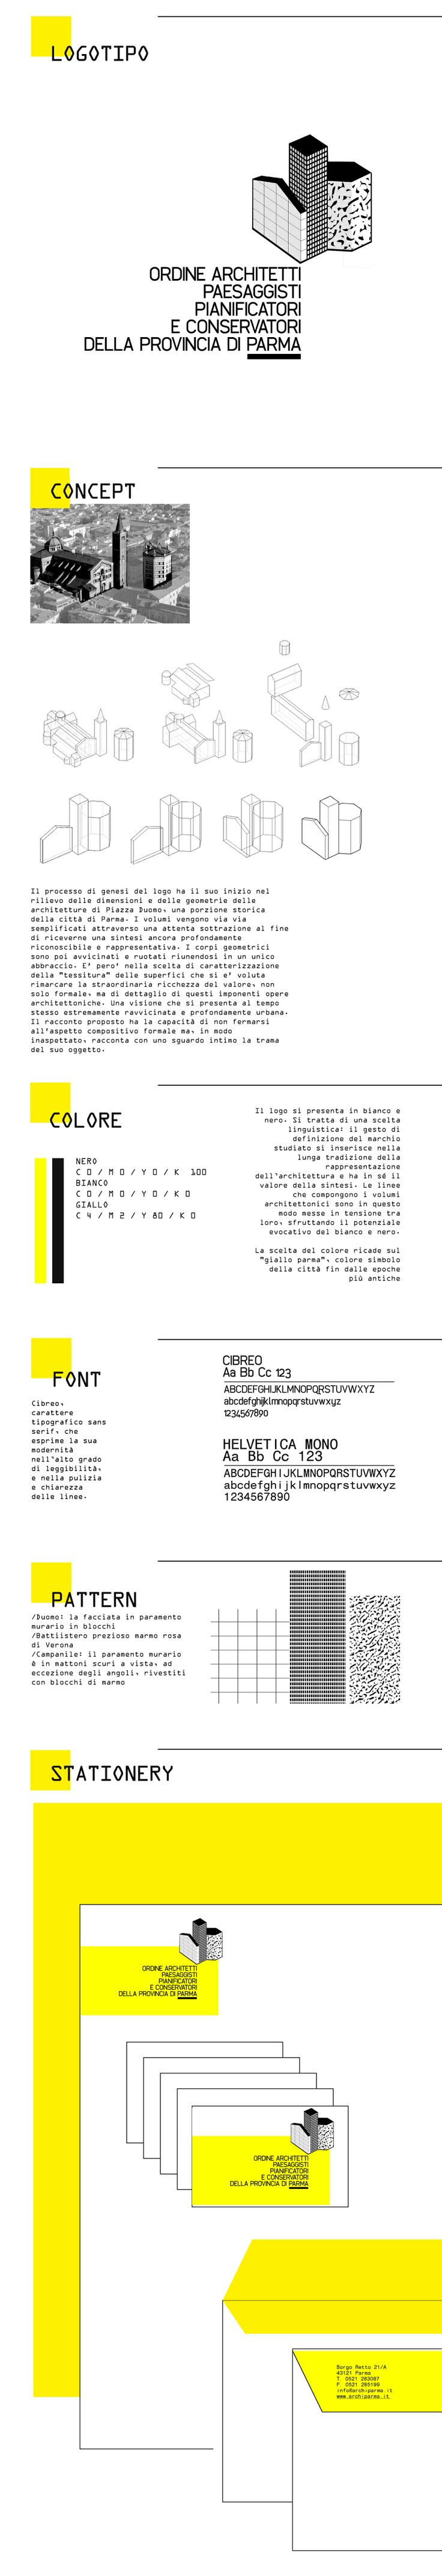 competition proposal Ordine Architetti Parma / project by Spectacularch! & IlogU www.spectacularch.com and www.ilogu.it